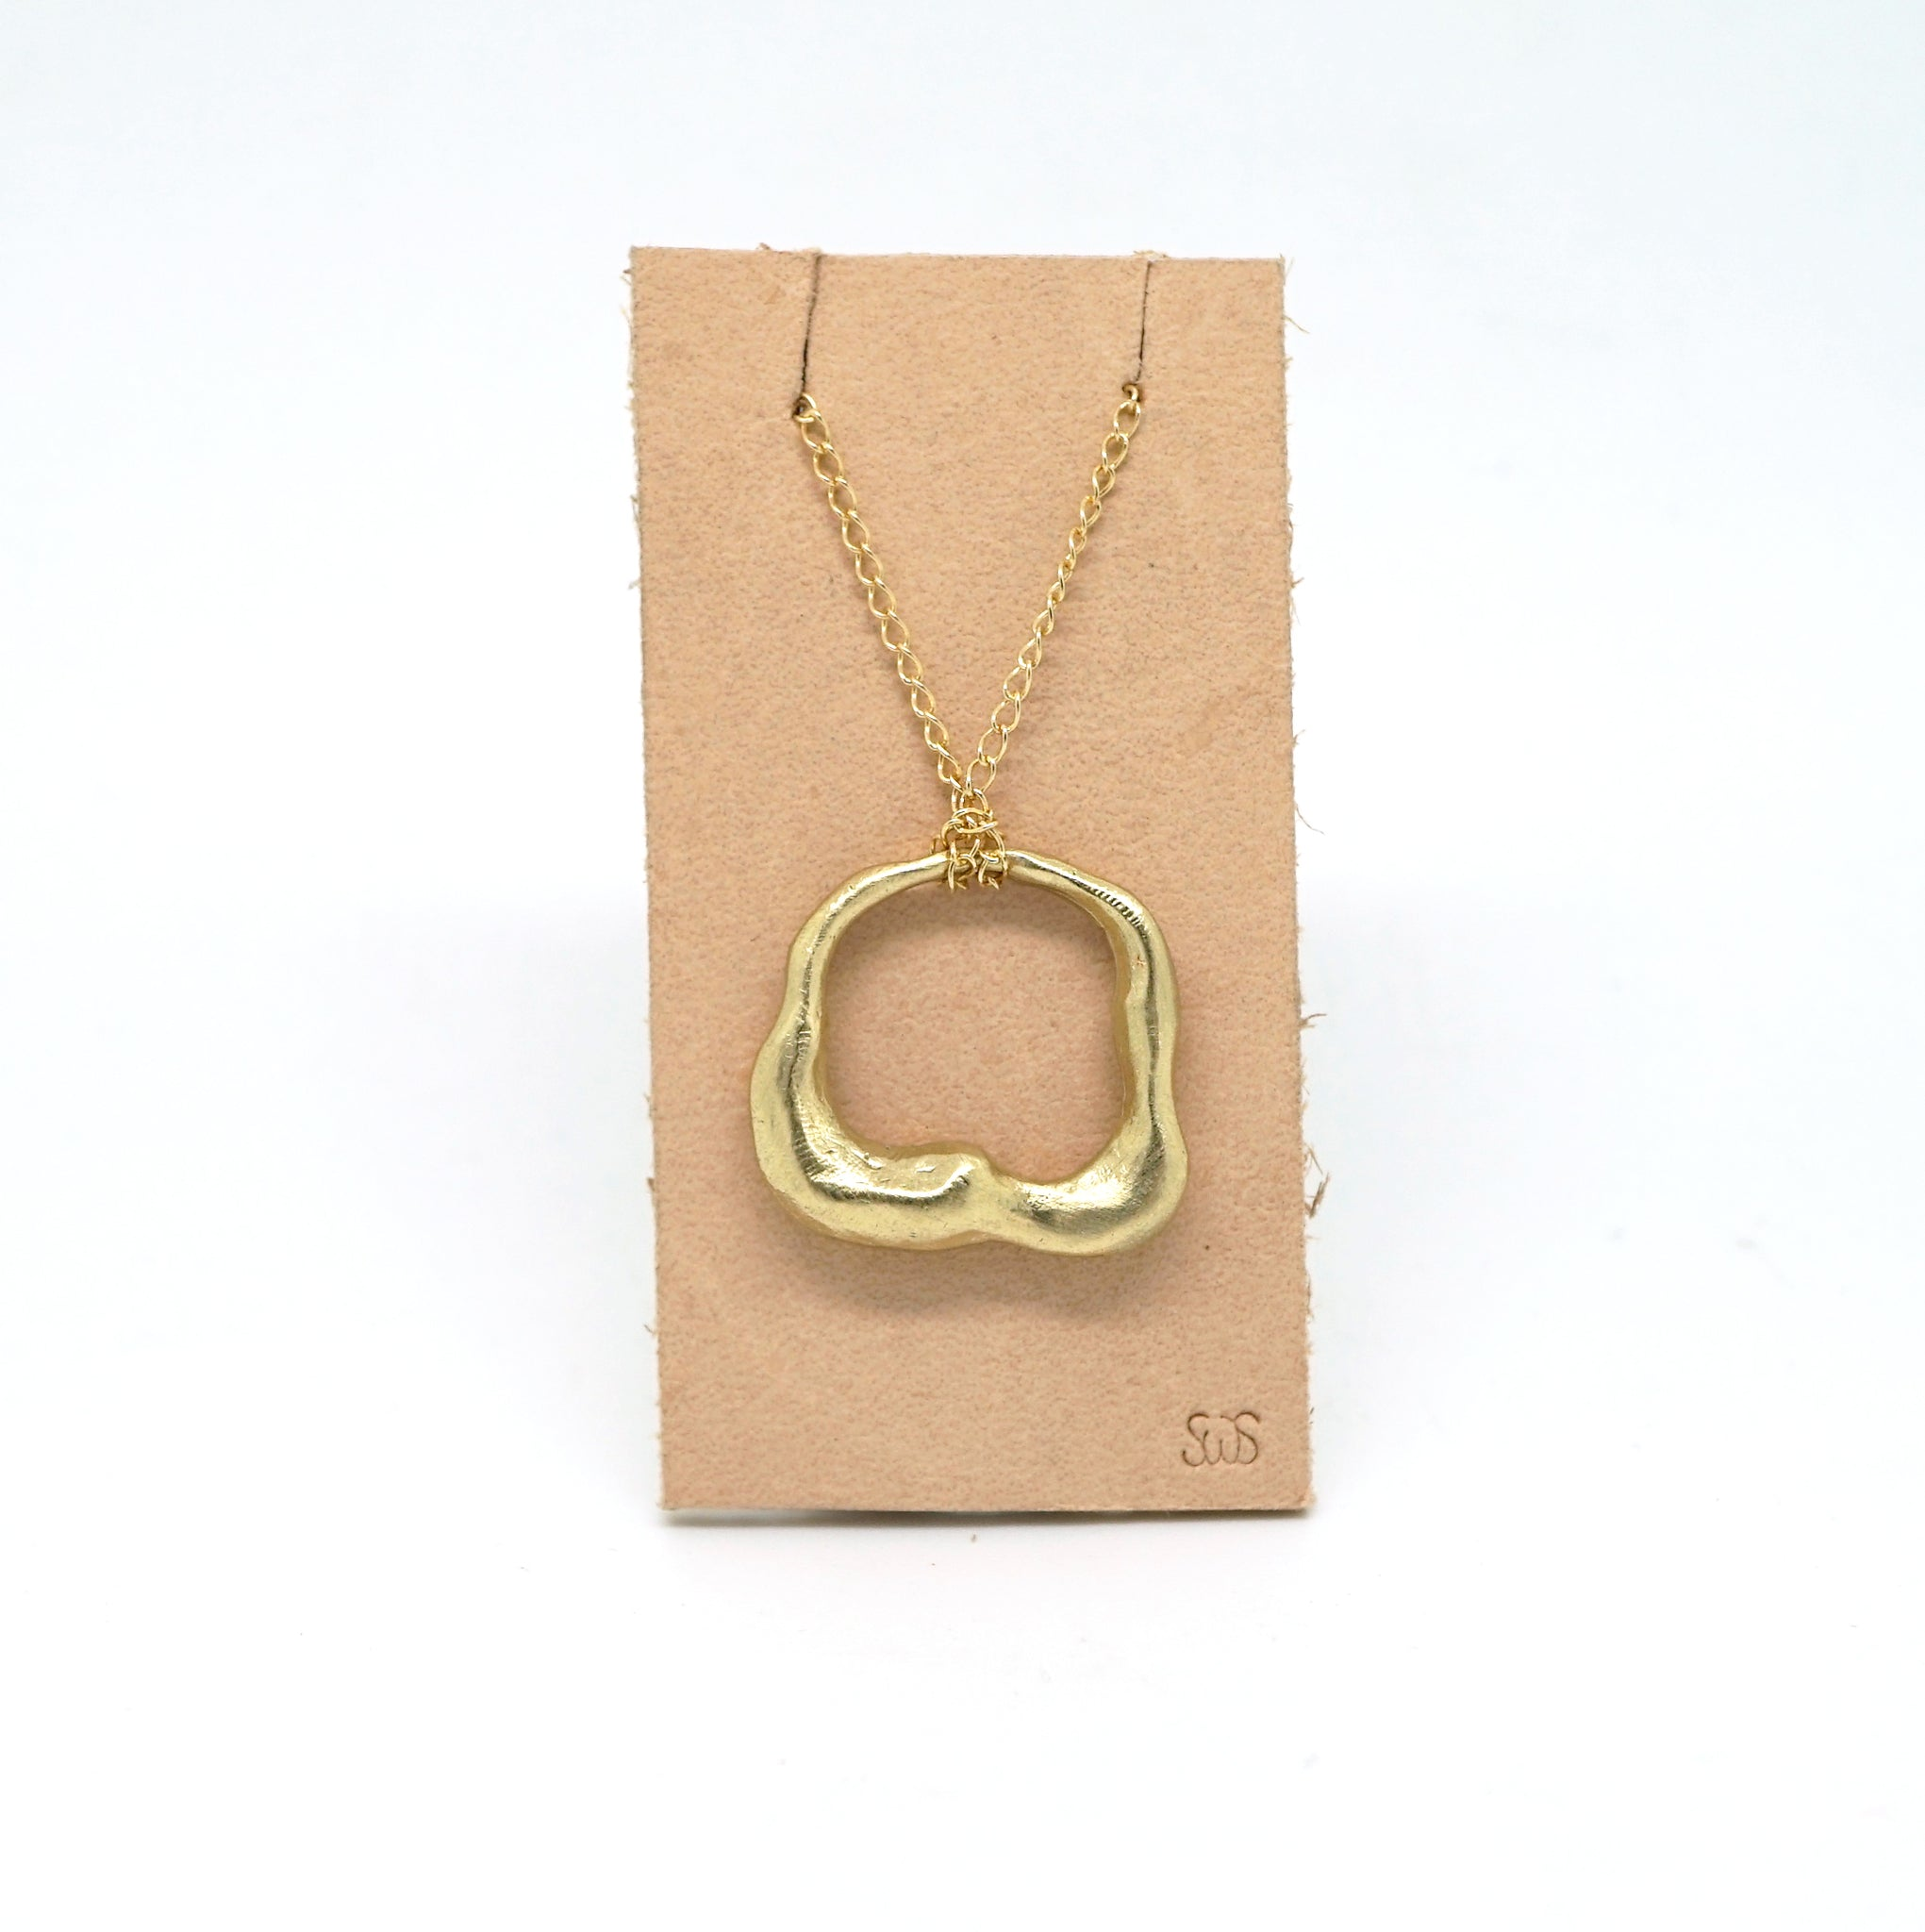 Abstract hole necklace in 14K gold